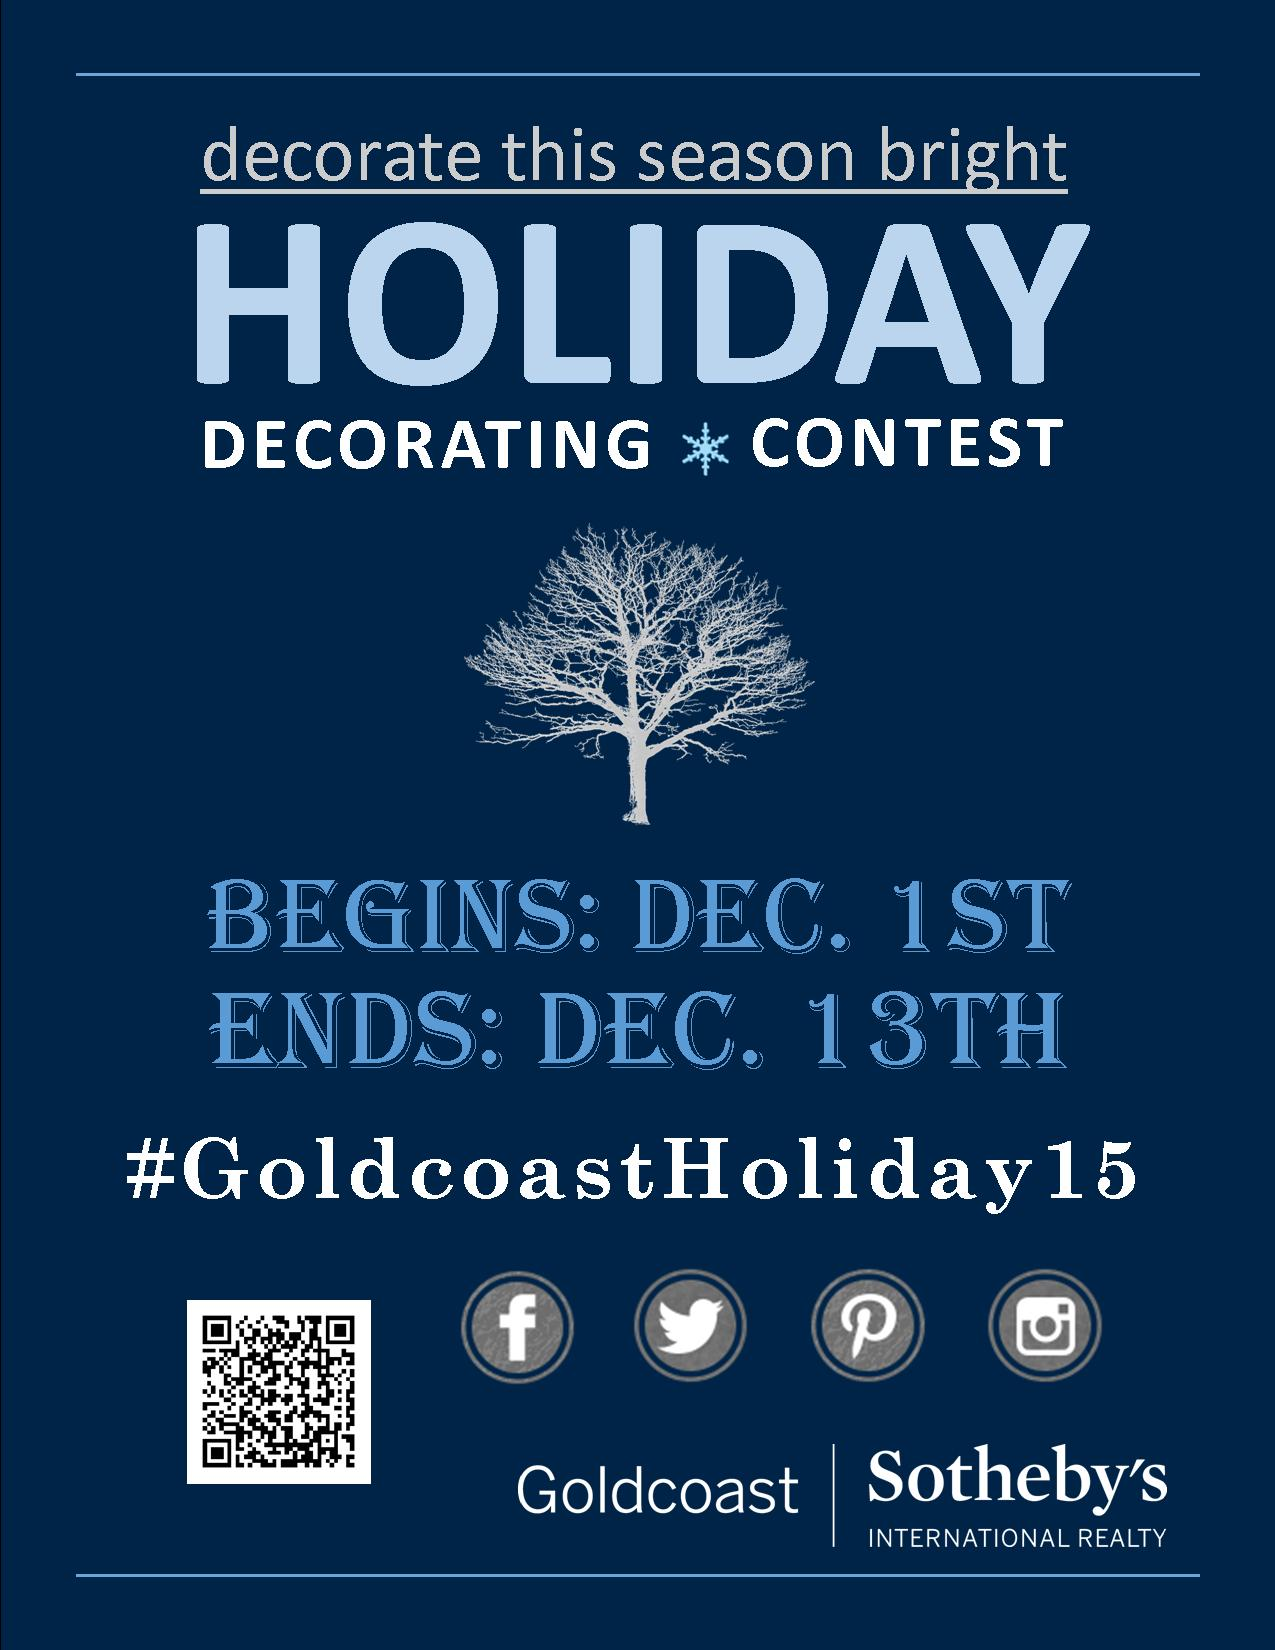 Goldcoast Sotheby's Holiday Decorating Contest